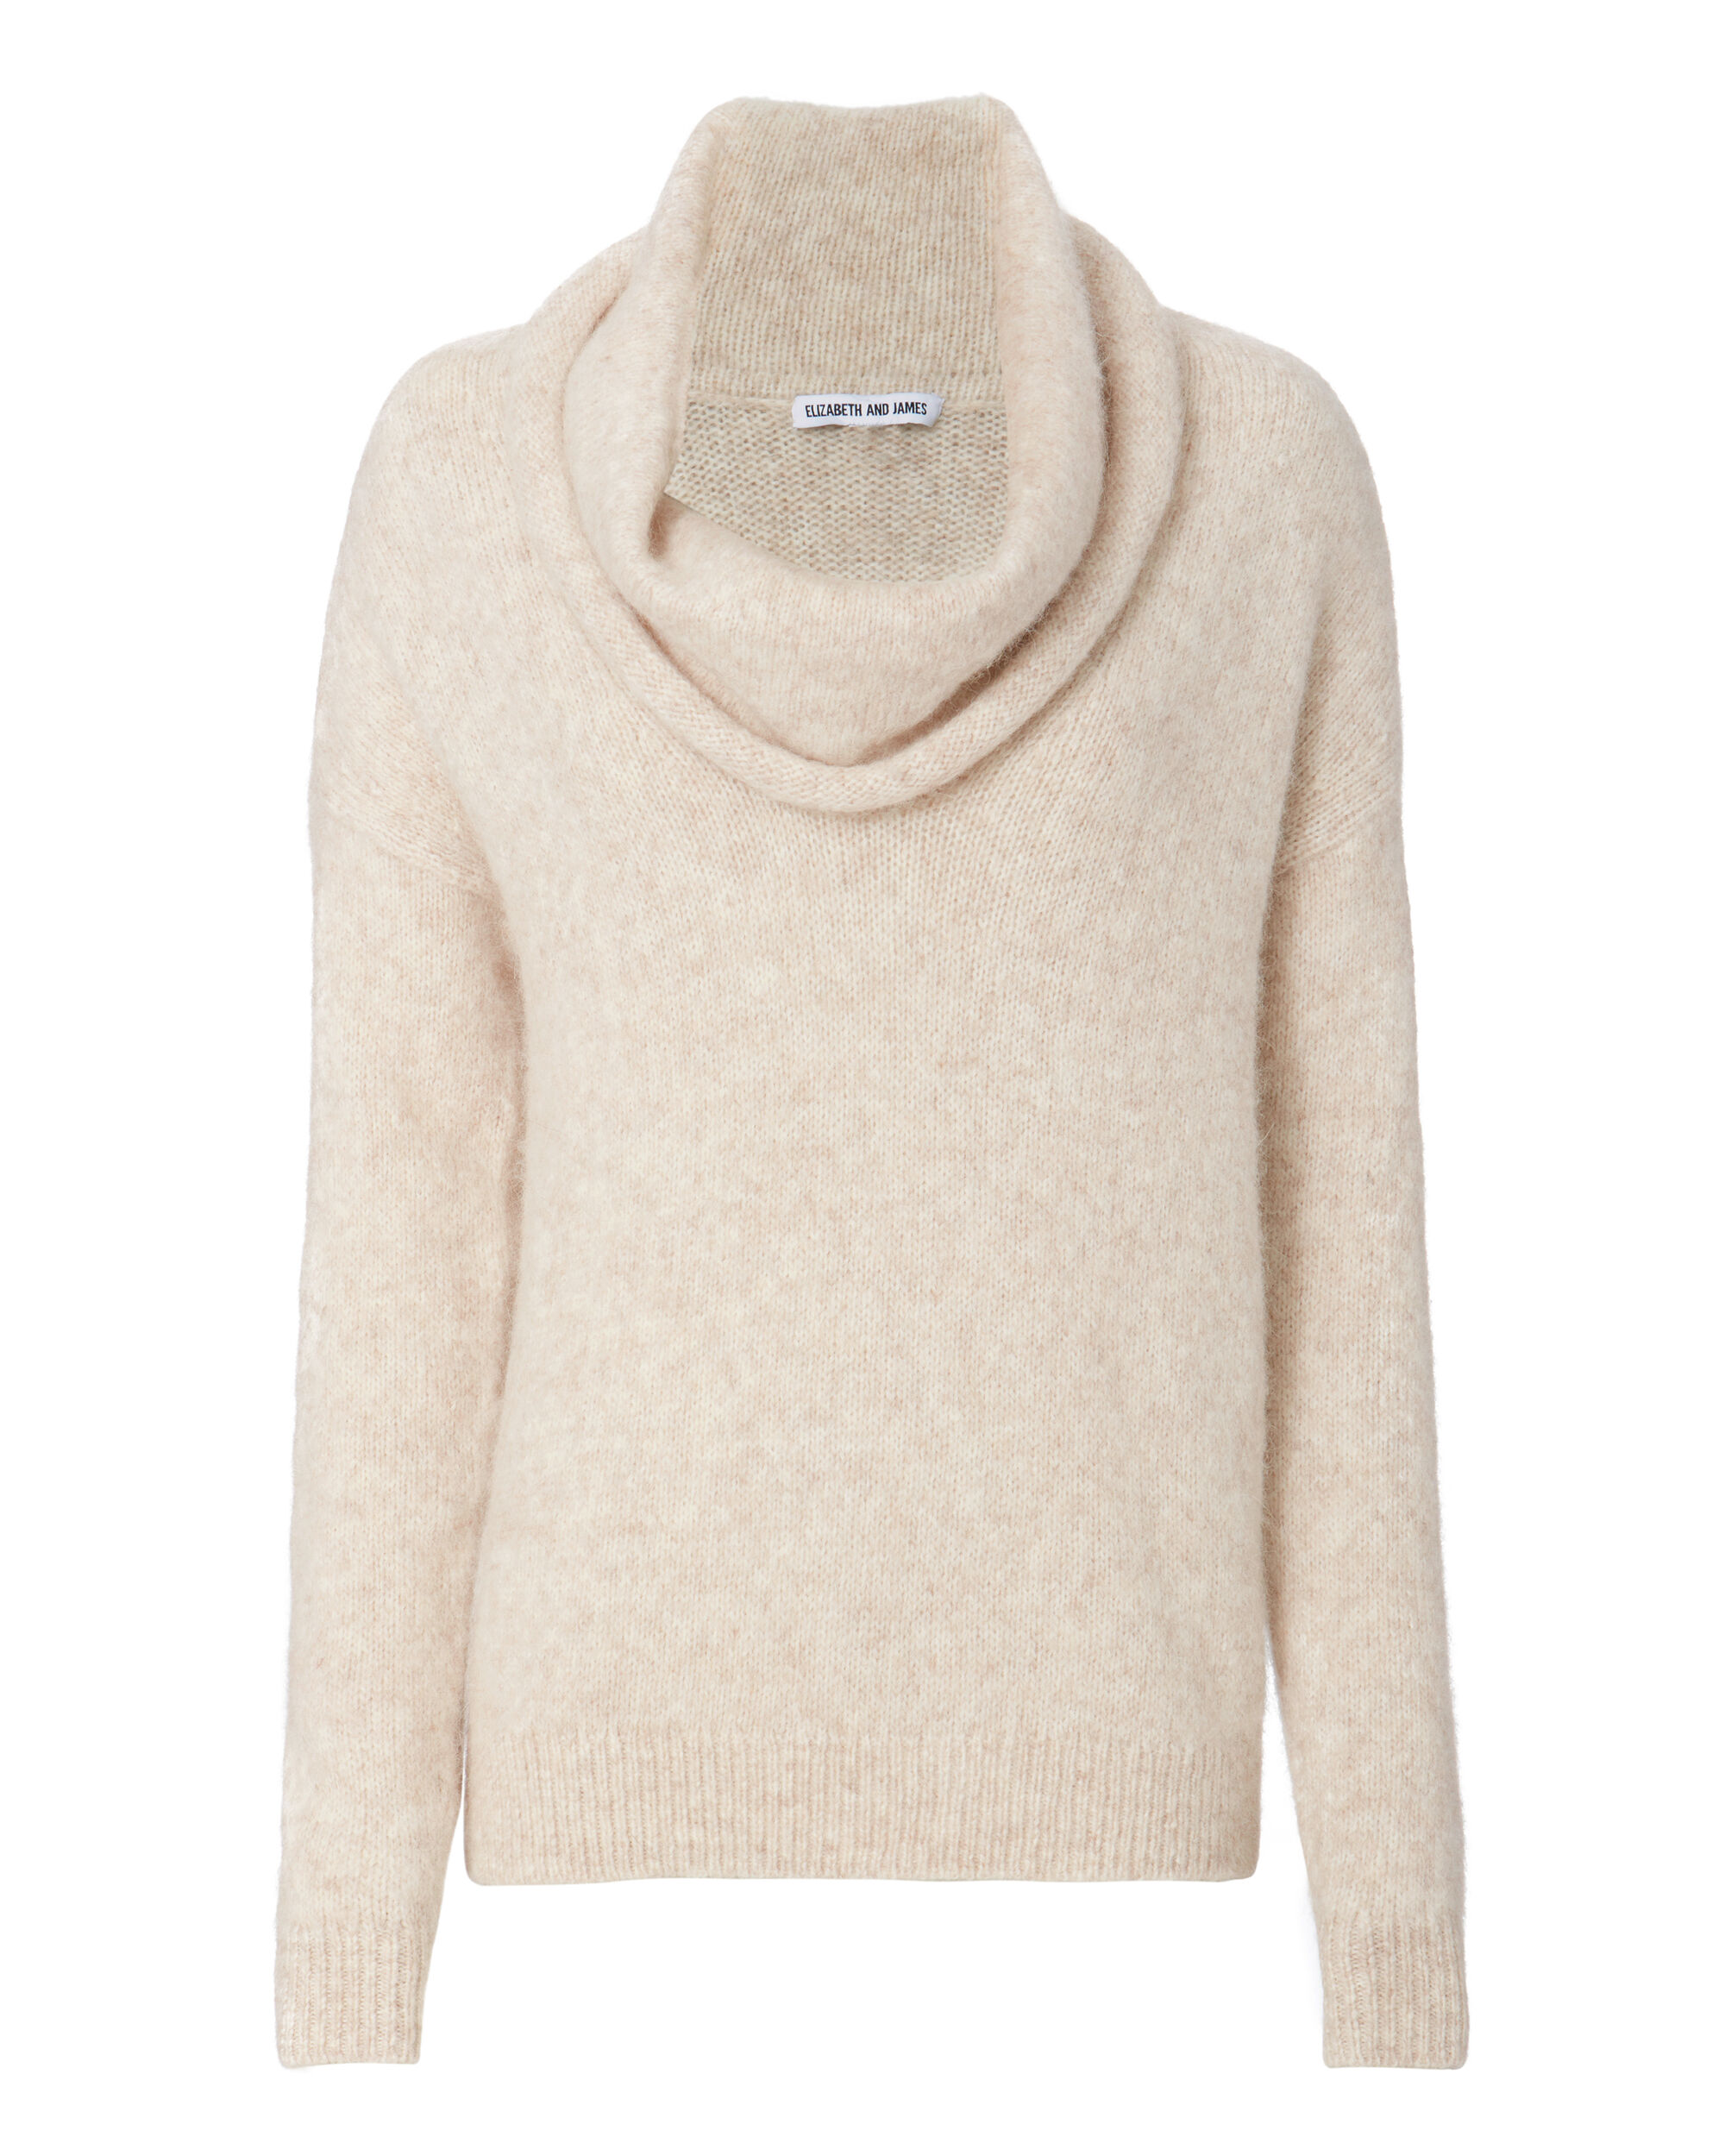 Gracelyn Cowl Neck Sweater, BEIGE, hi-res